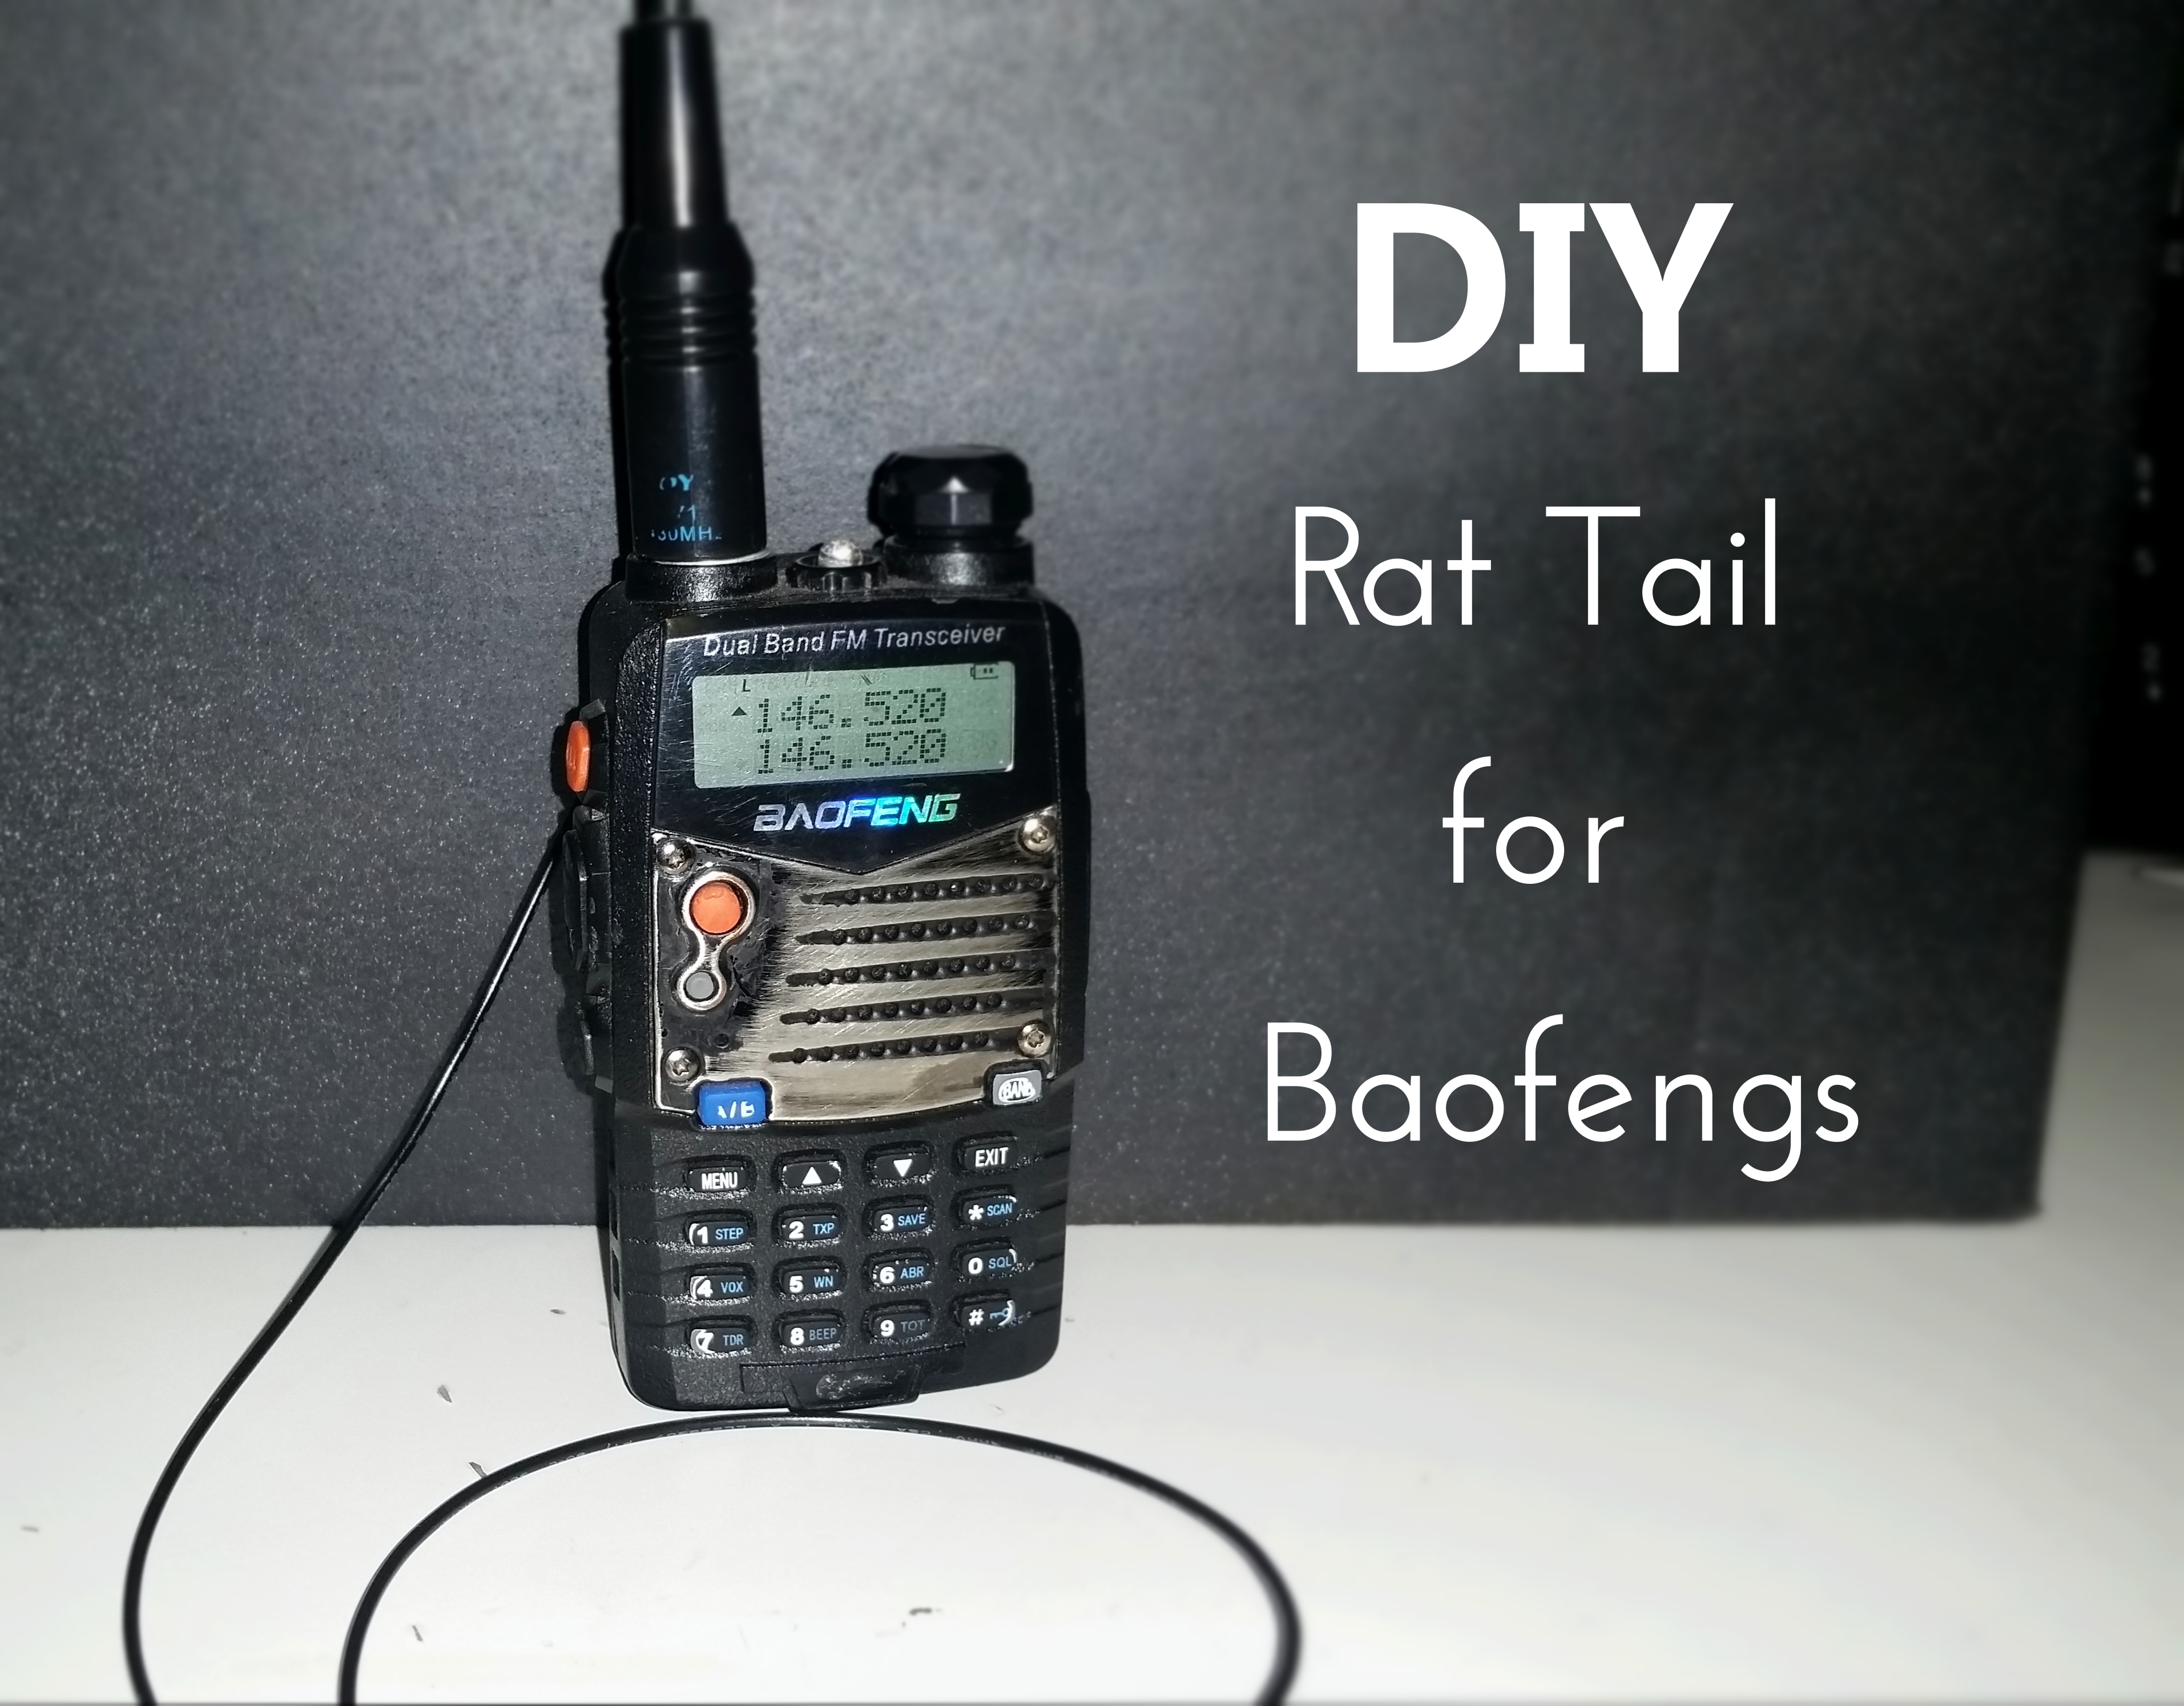 Radio Antenna Booster Diy Active Fm Amplifier By C2570 Rat Tail Tiger Counterpoise For The Baofeng Radios Vhf How To Dramatically